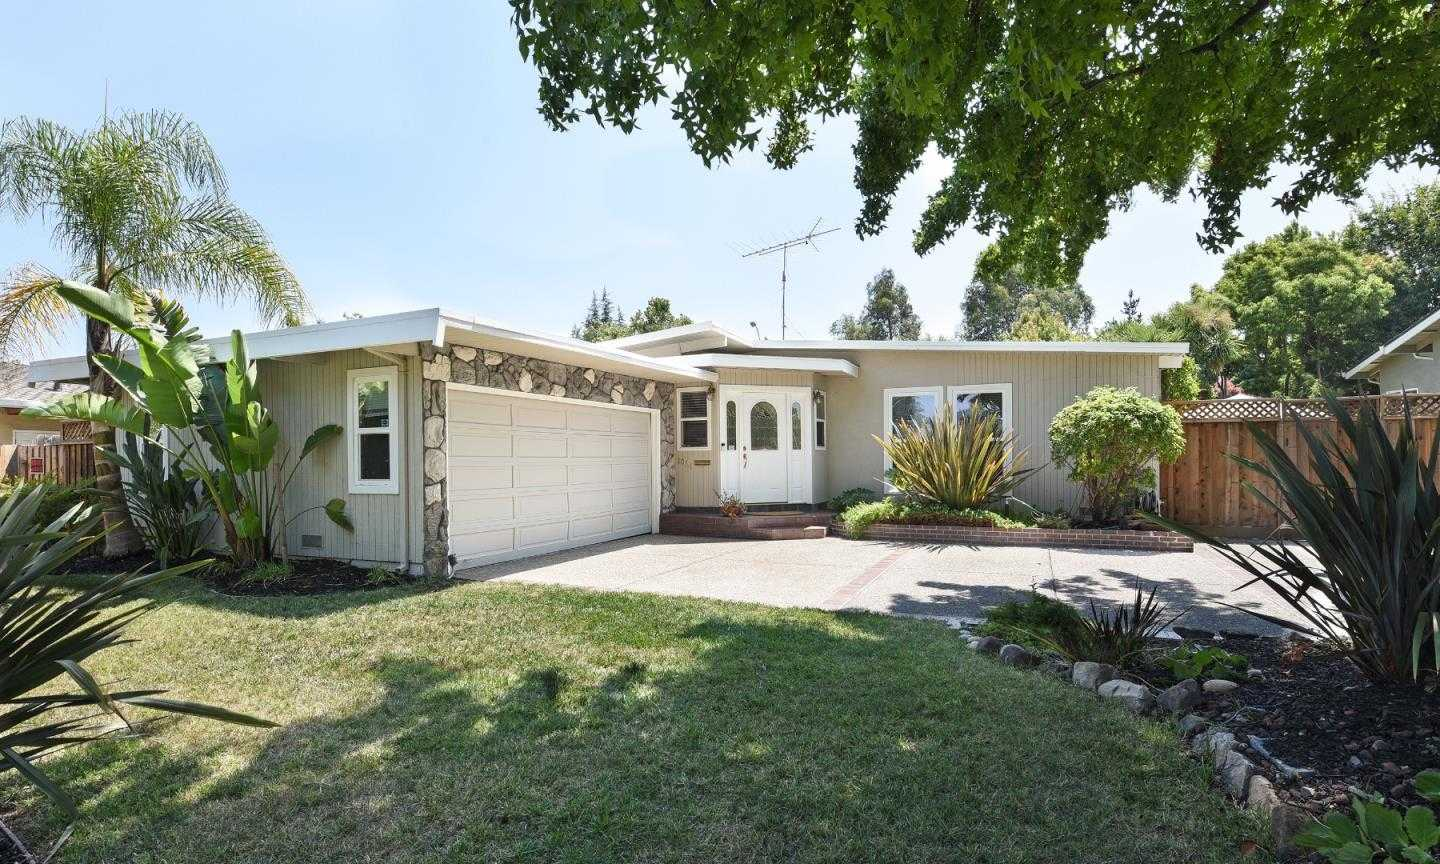 $1,799,888 - 3Br/2Ba -  for Sale in Sunnyvale